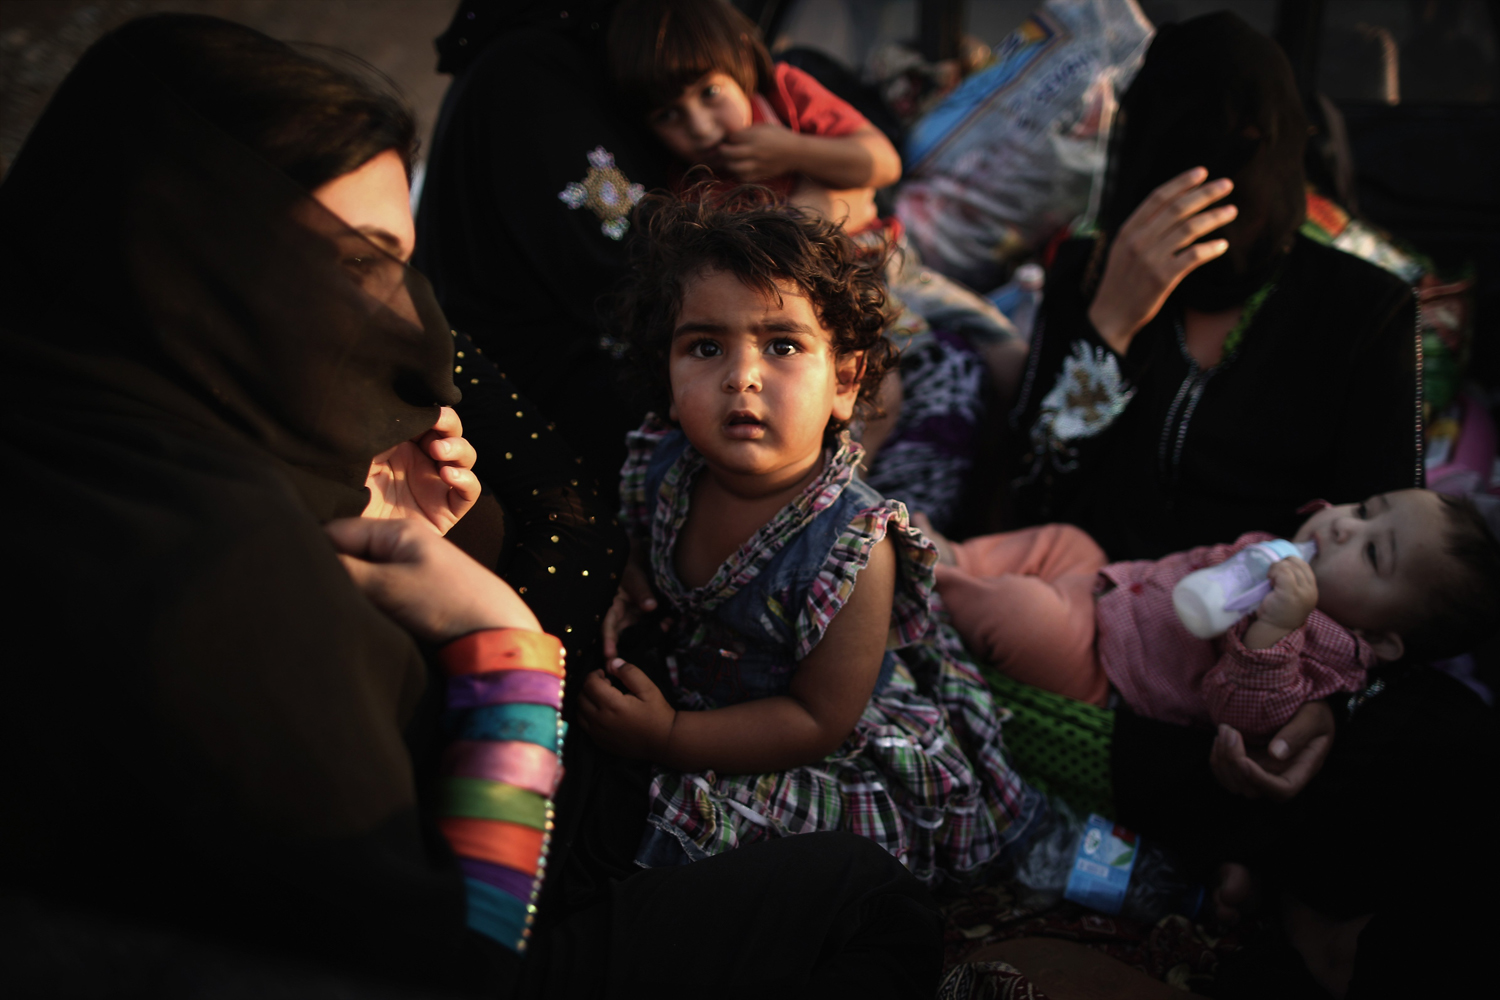 Jun. 14, 2014. Families arrive at a Kurdish checkpoint next to a temporary displacement camp in Kalak, Iraq.